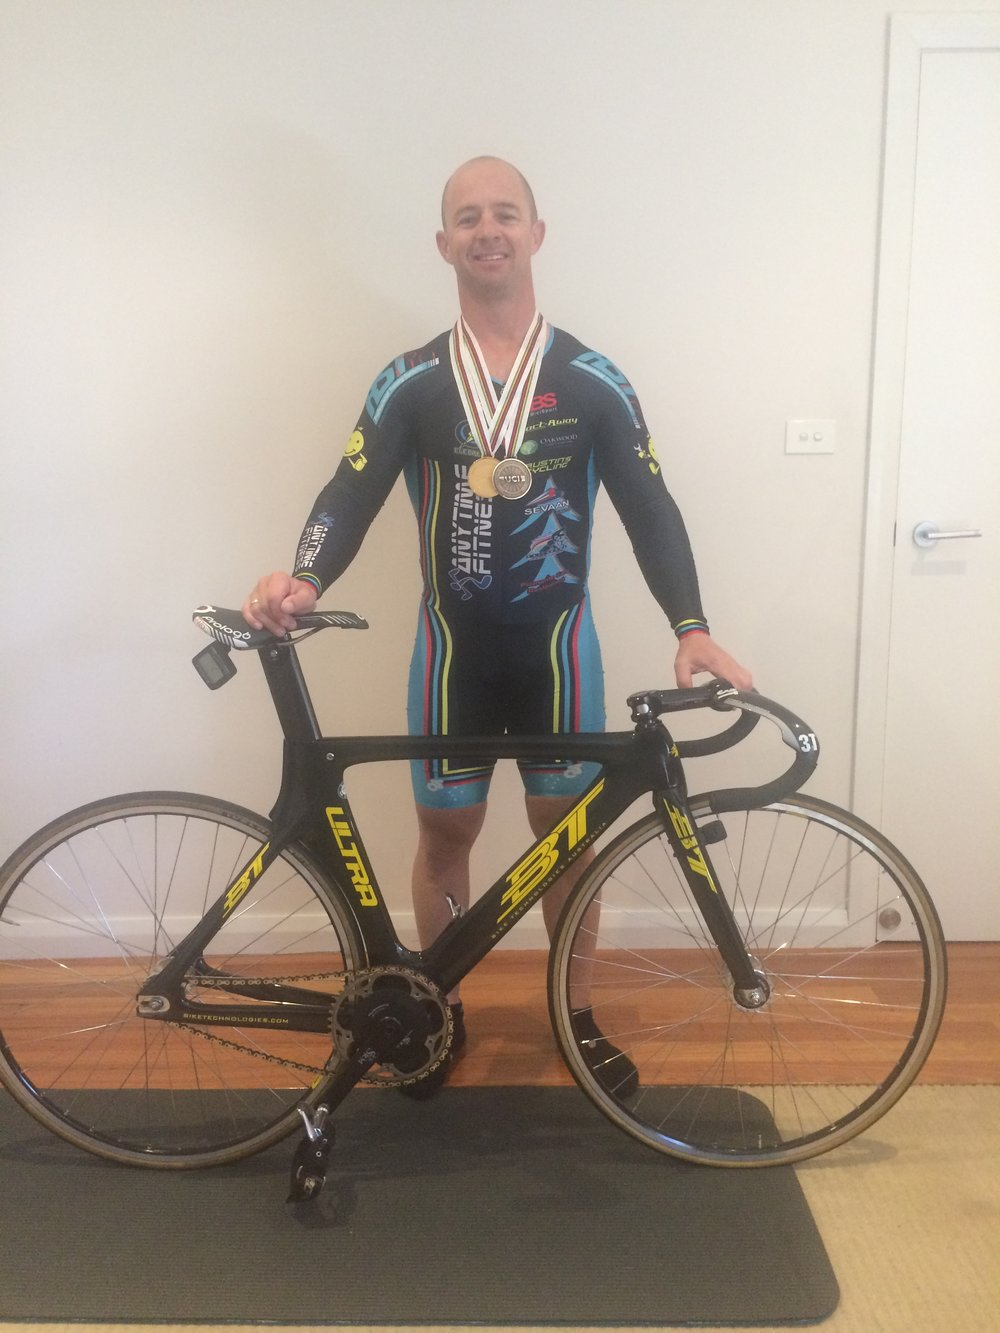 Manchester - Mike Smith (Gold Medal in Sprint, Bronze in Team Sprint)